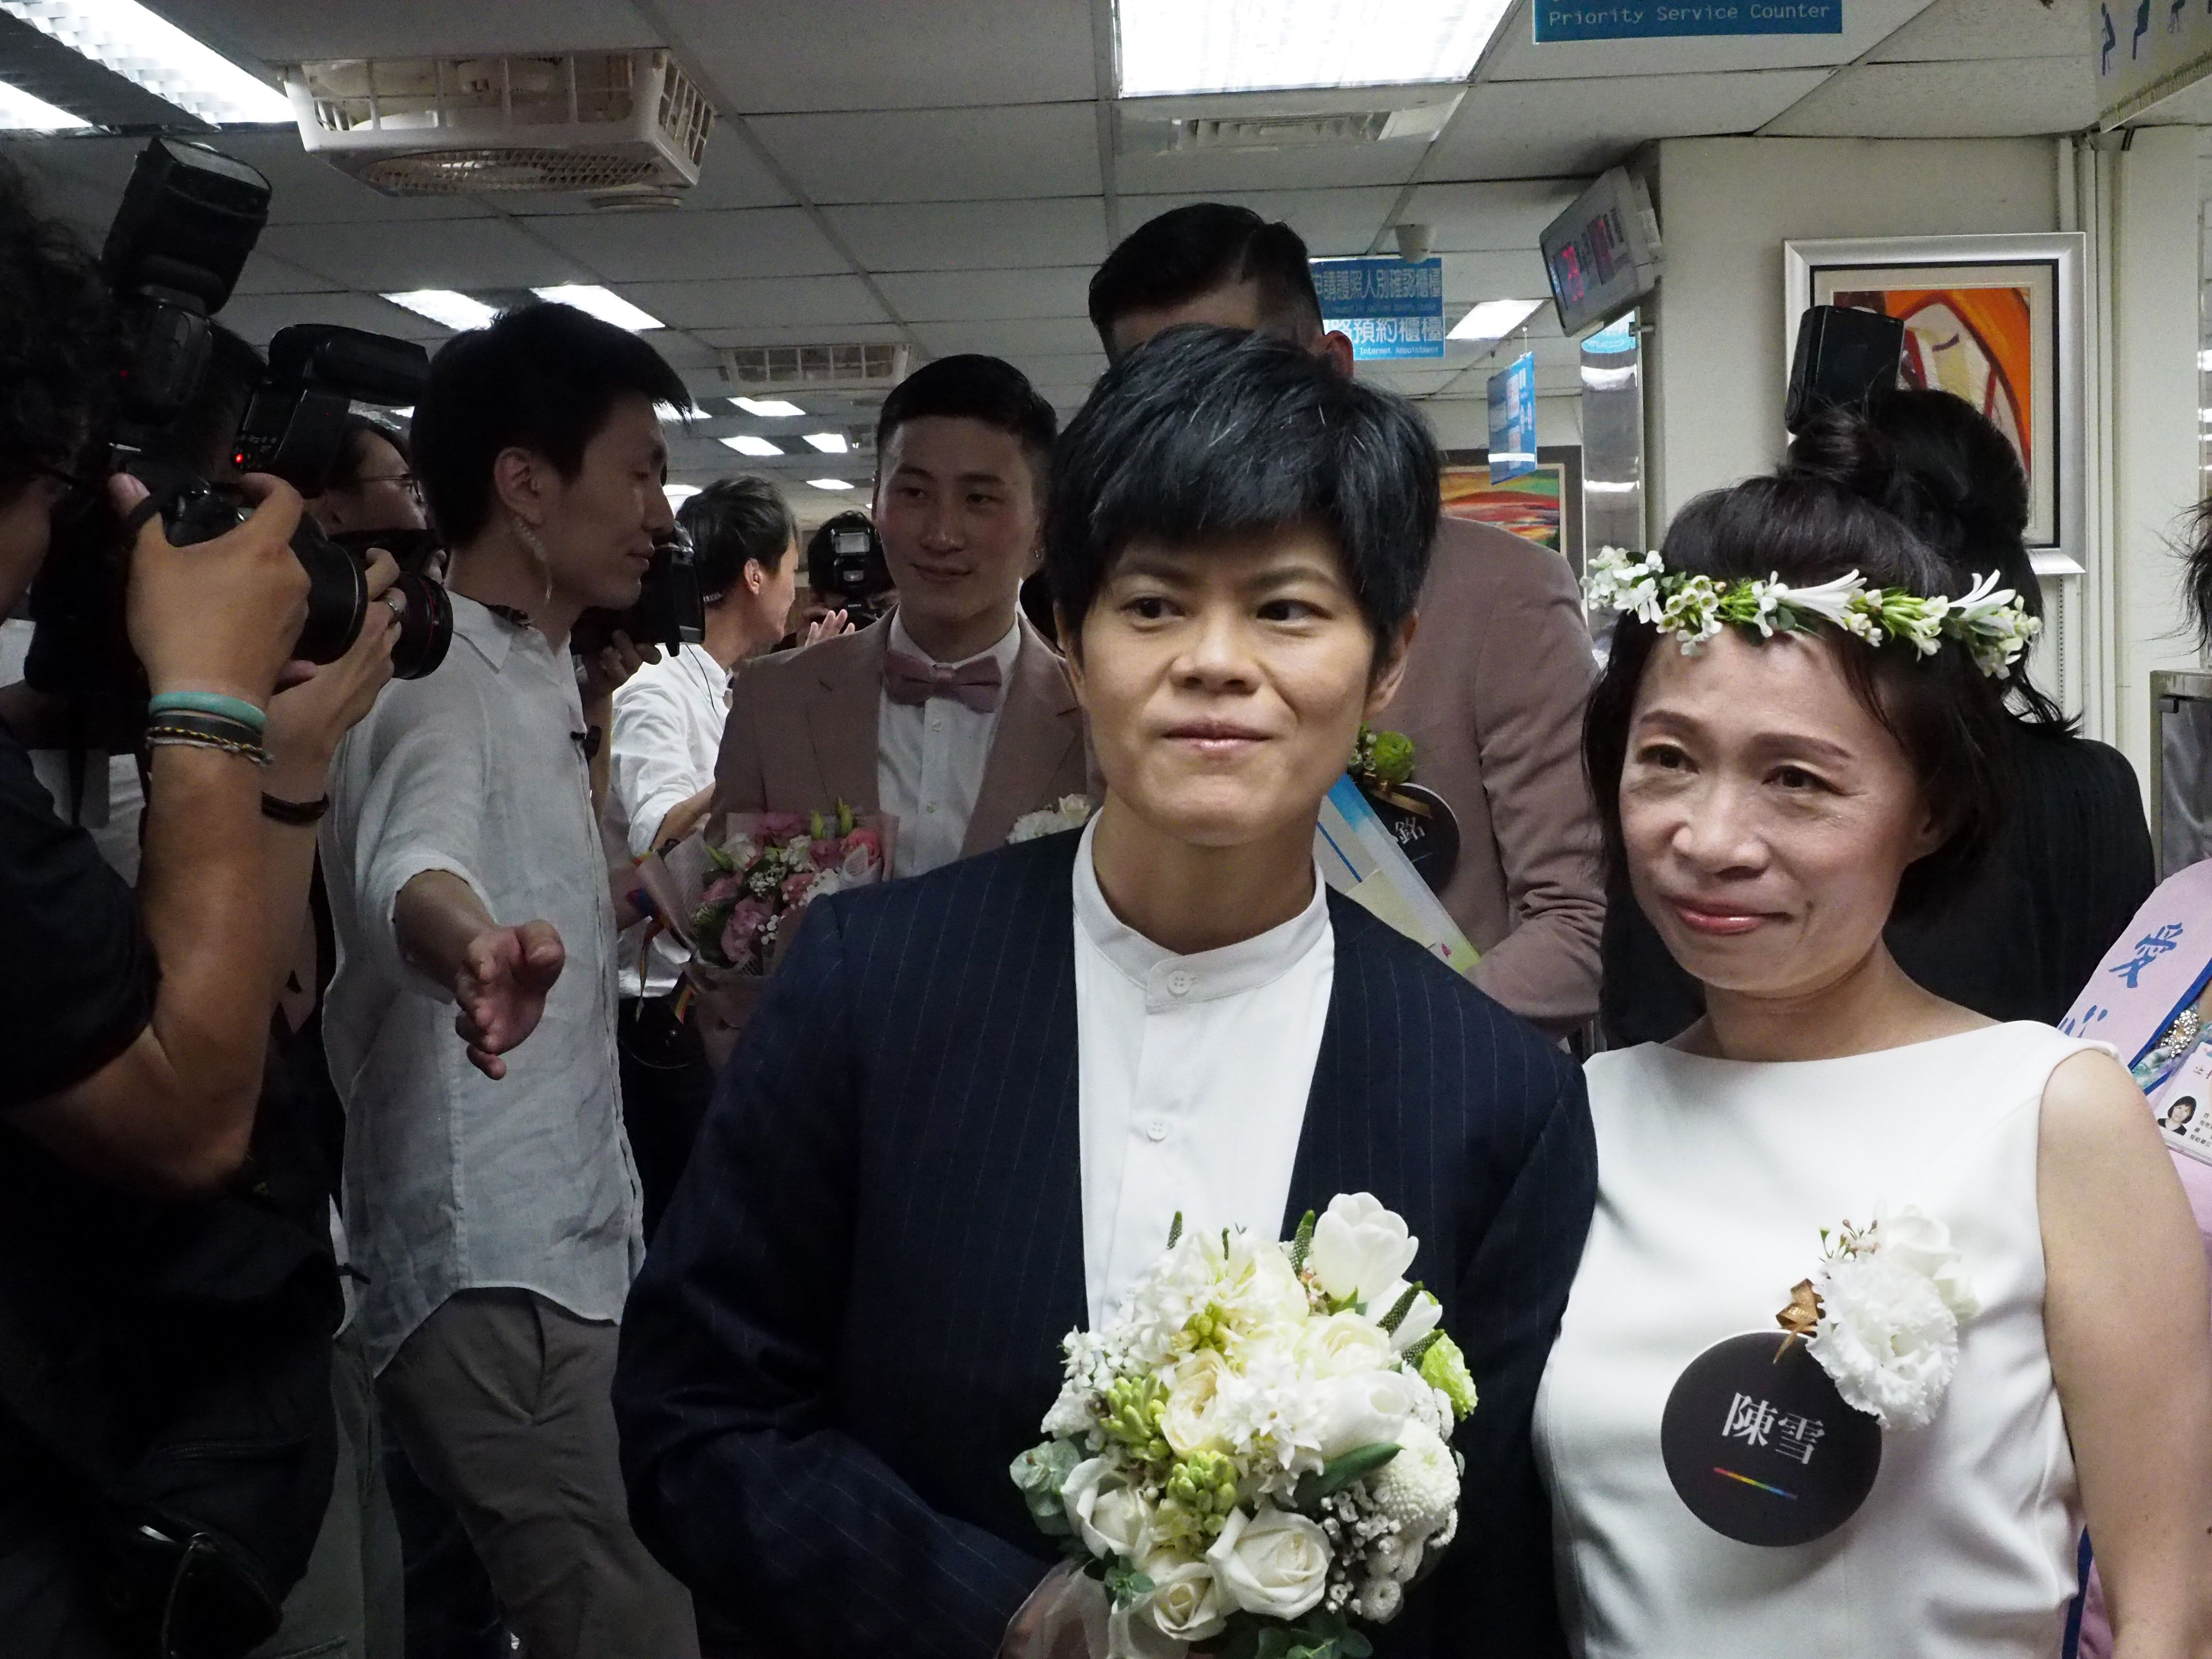 Taiwanese writer Chen Hsueh, right, and her partner, center, pose for a photo.